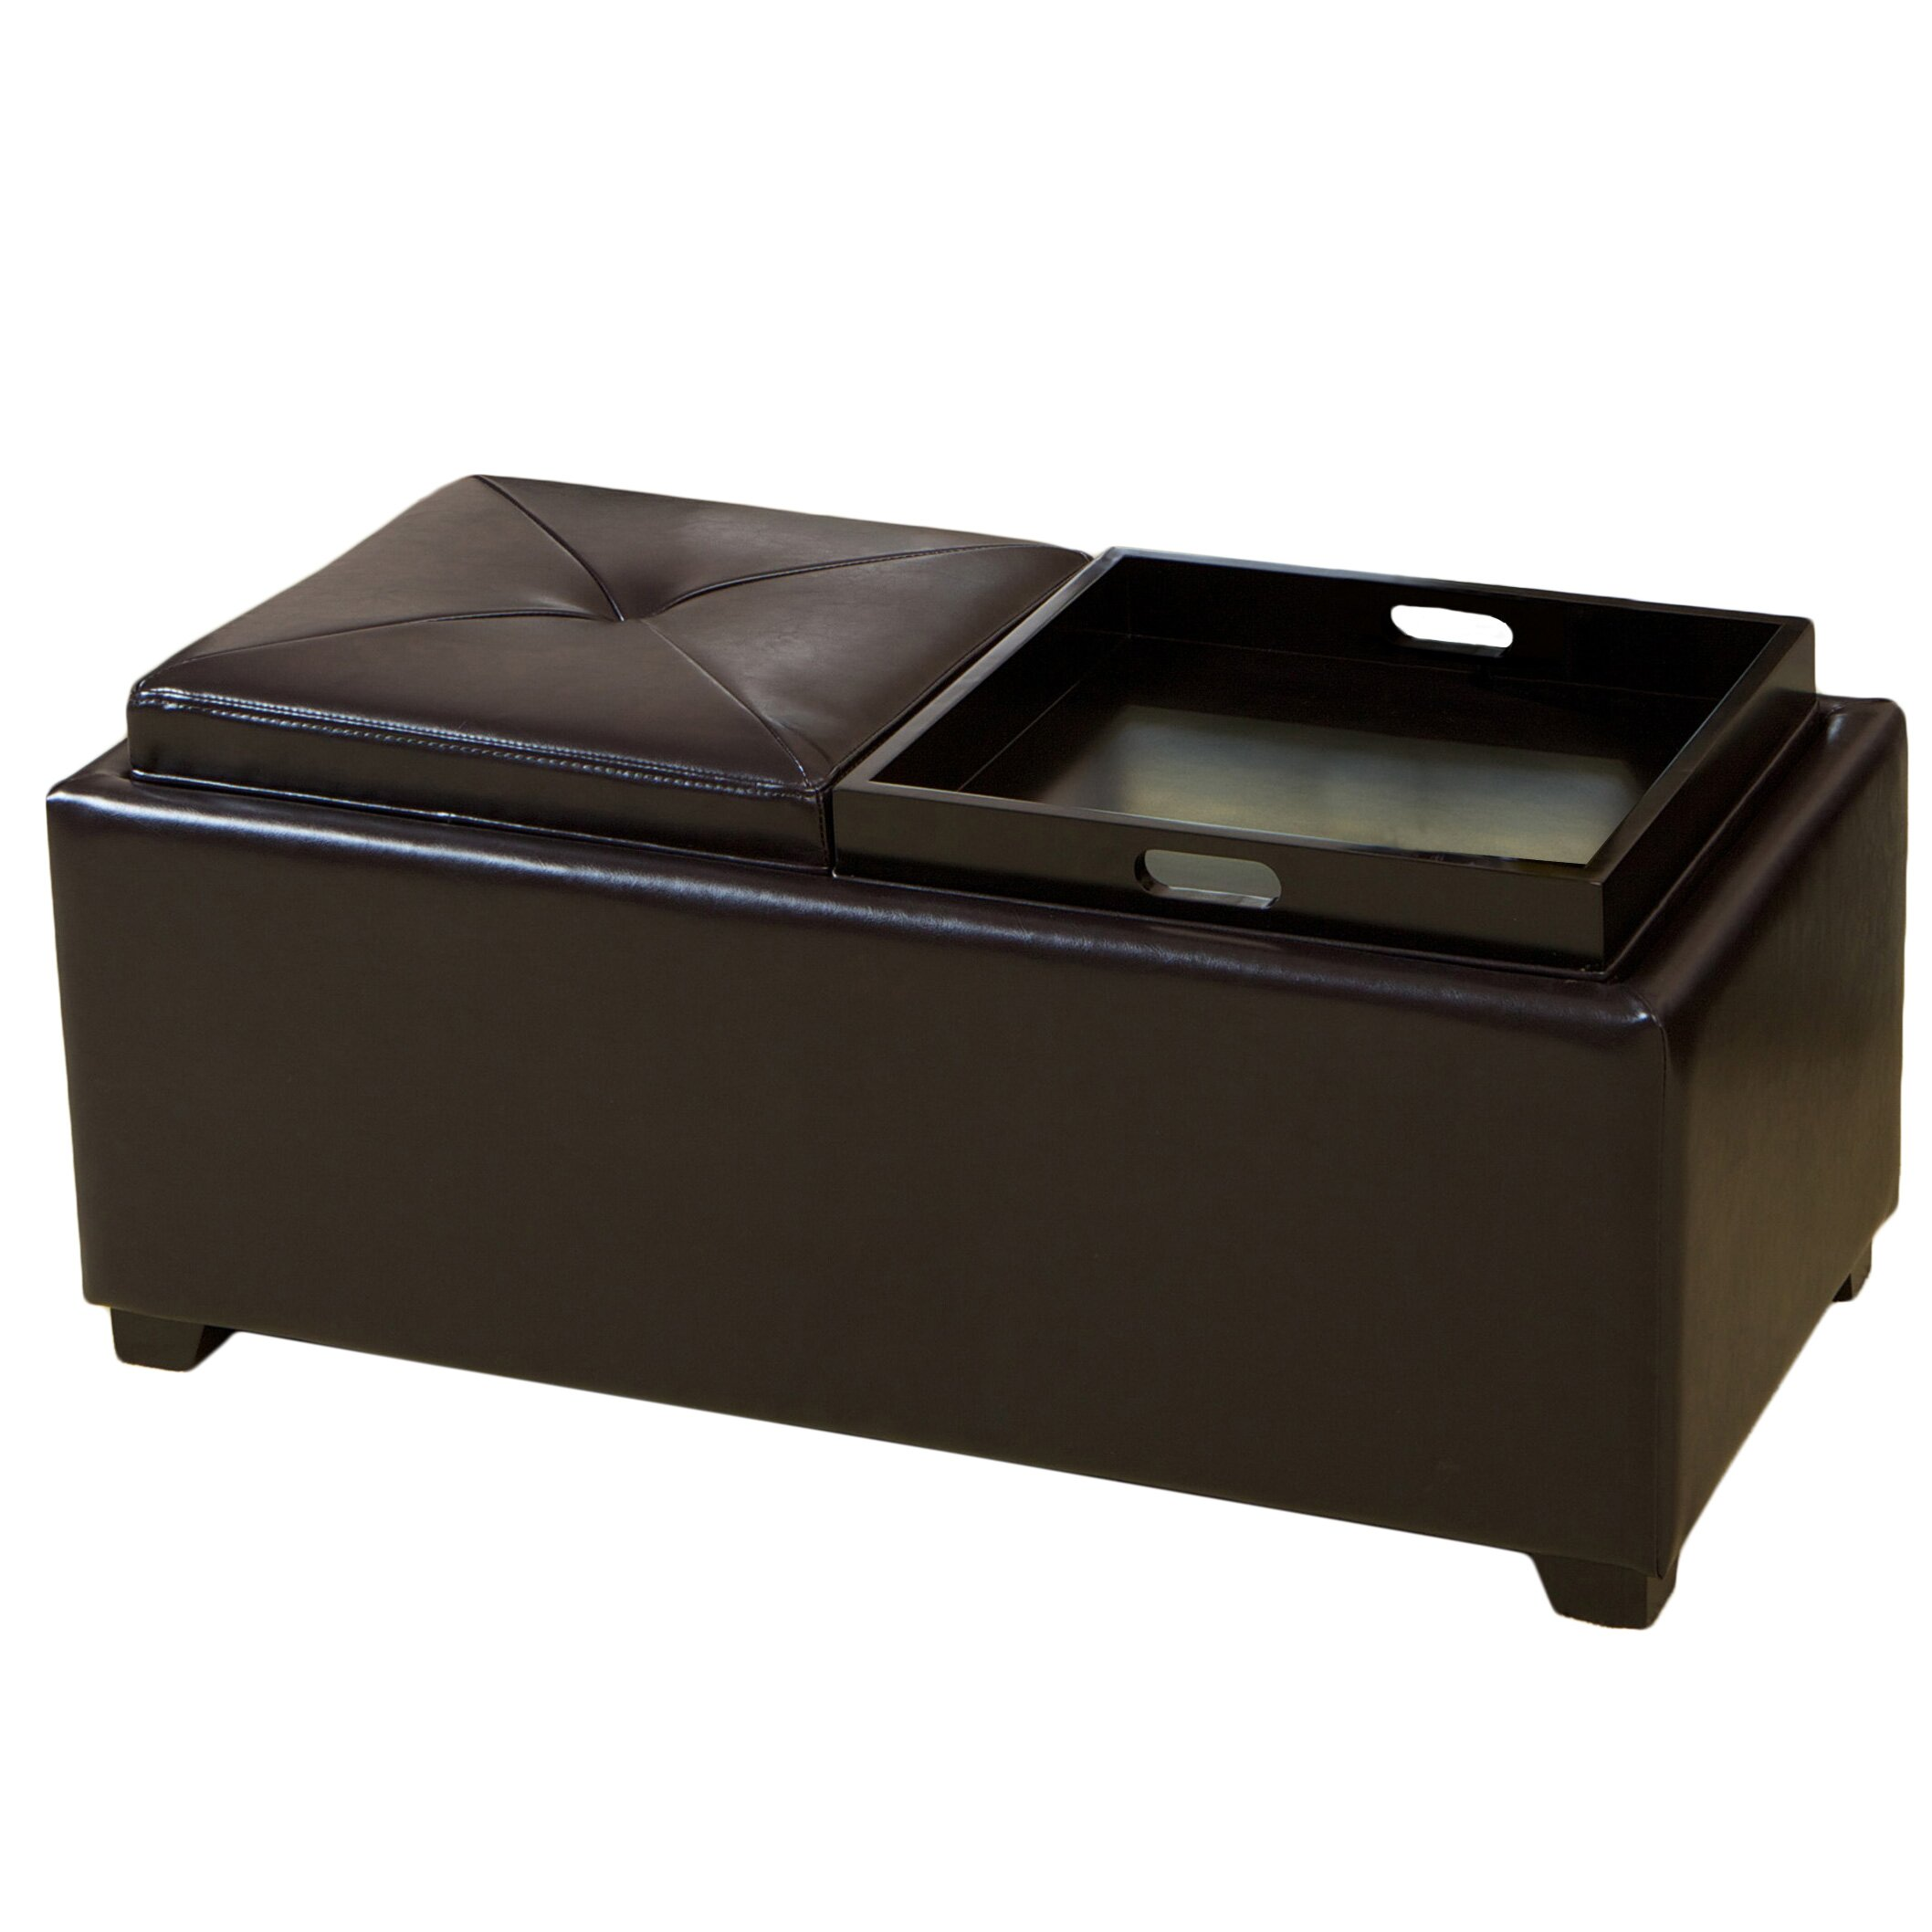 darby home co cassy leather storage tray ottoman reviews wayfair. Black Bedroom Furniture Sets. Home Design Ideas